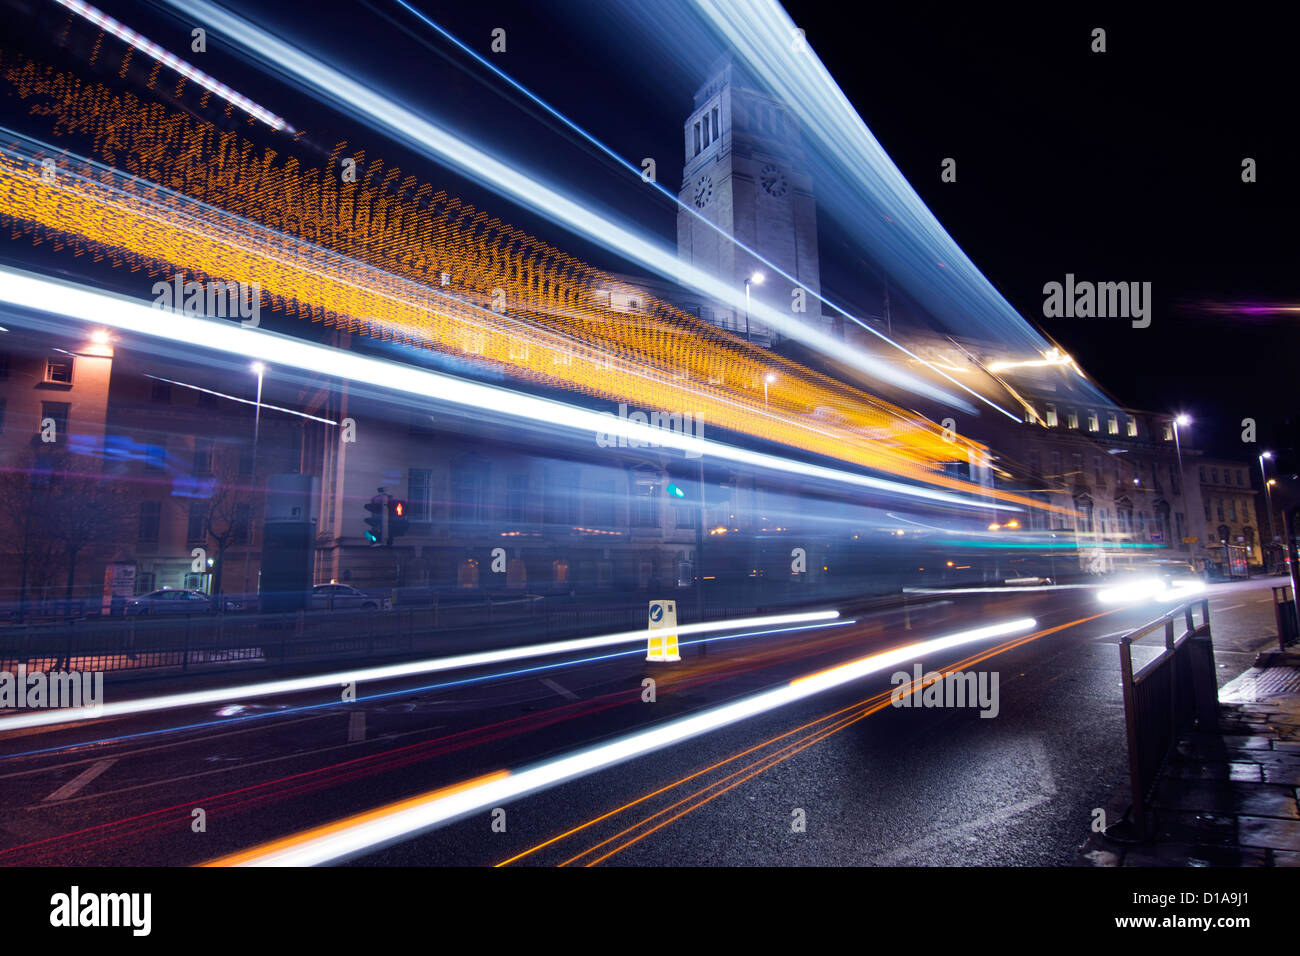 Leeds University with light trails from a passing bus at night - Stock Image